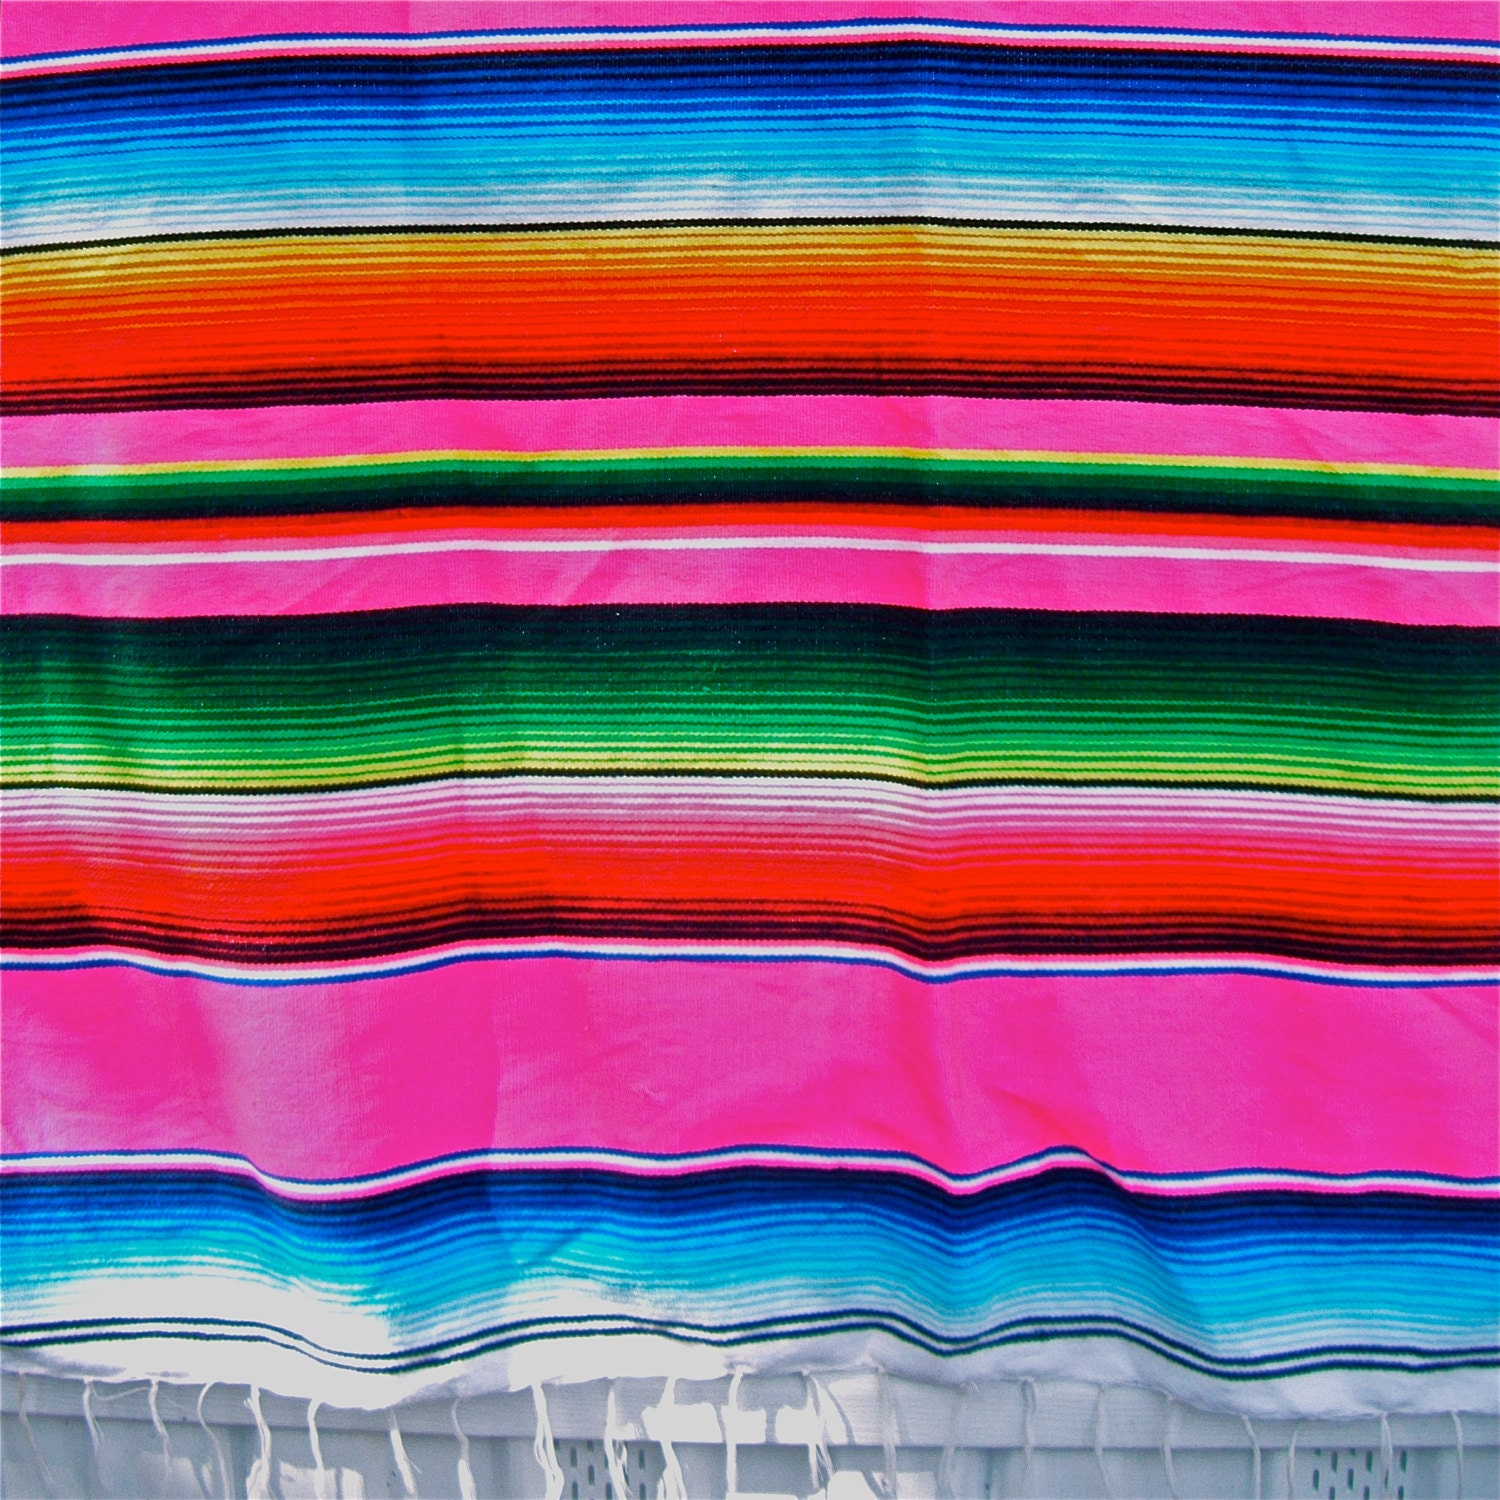 Vintage Mexican Woven Serape Blanket Hot Pink 46 by 82